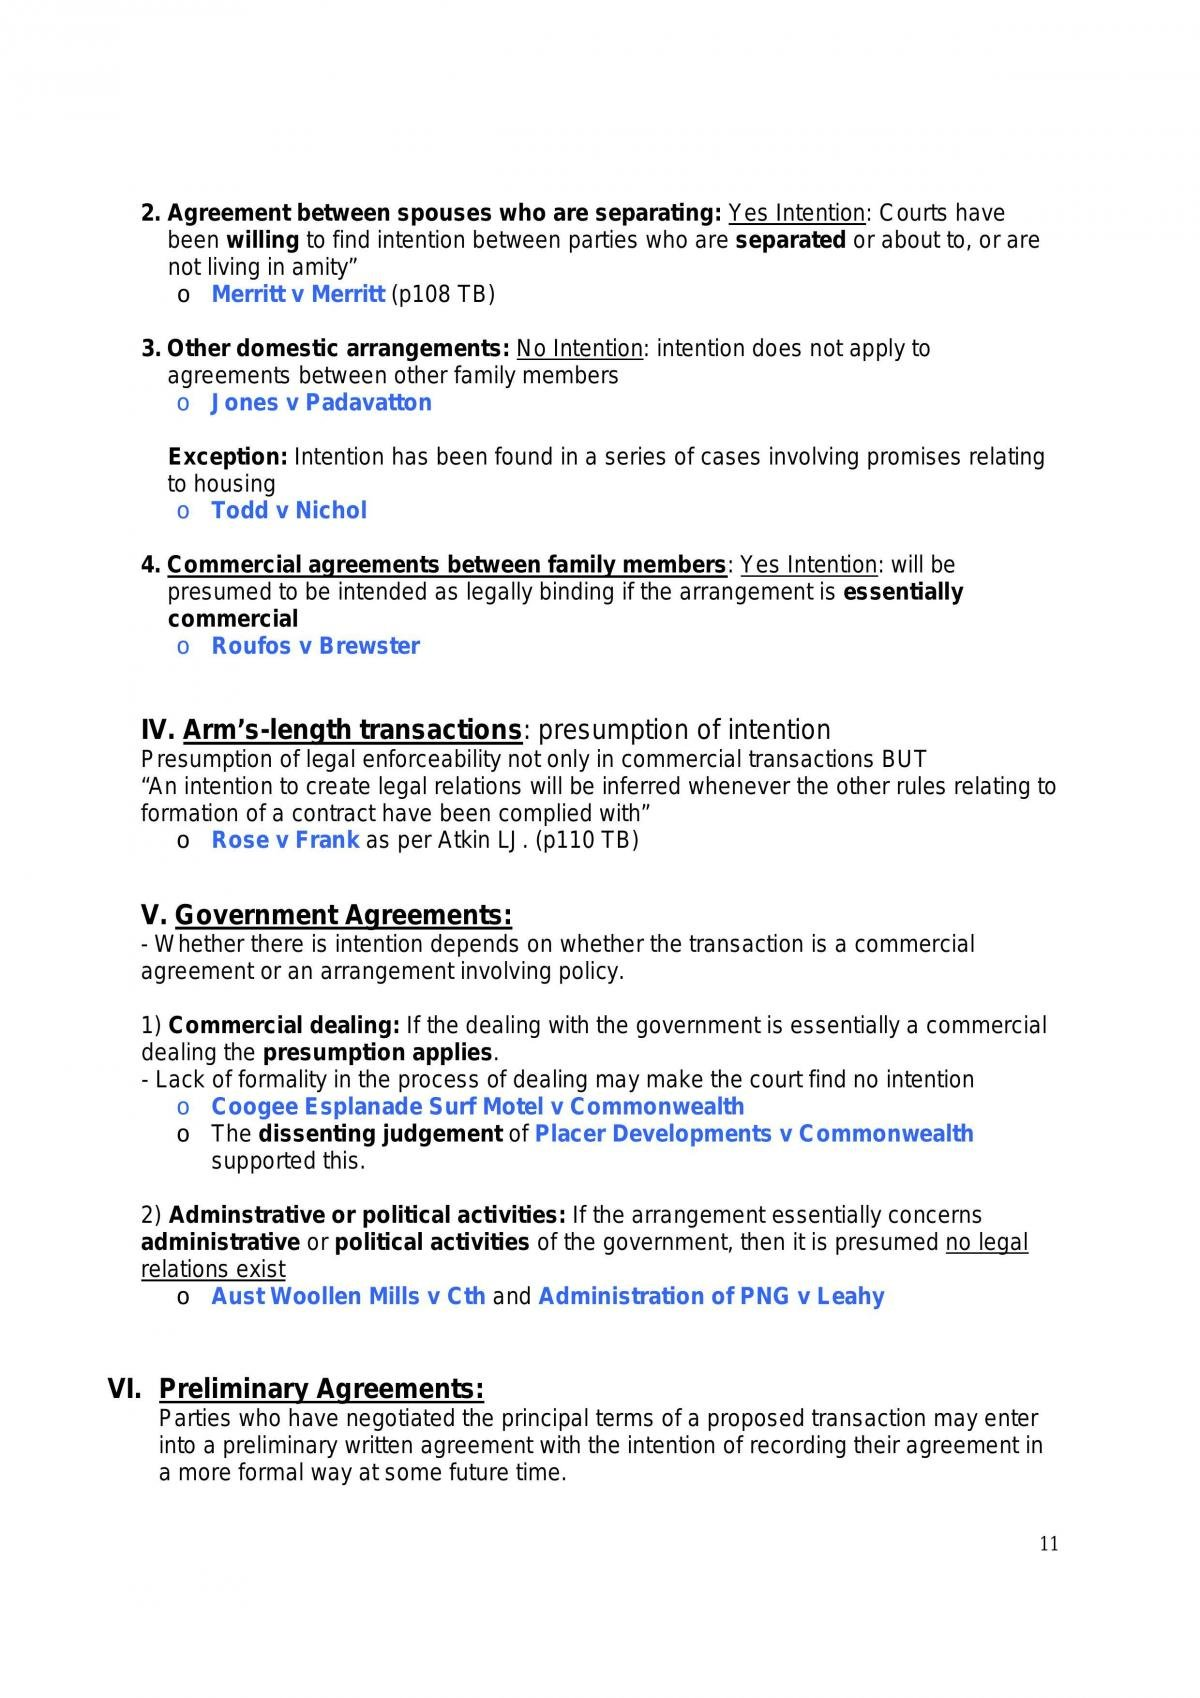 Contracts 1 - Page 11